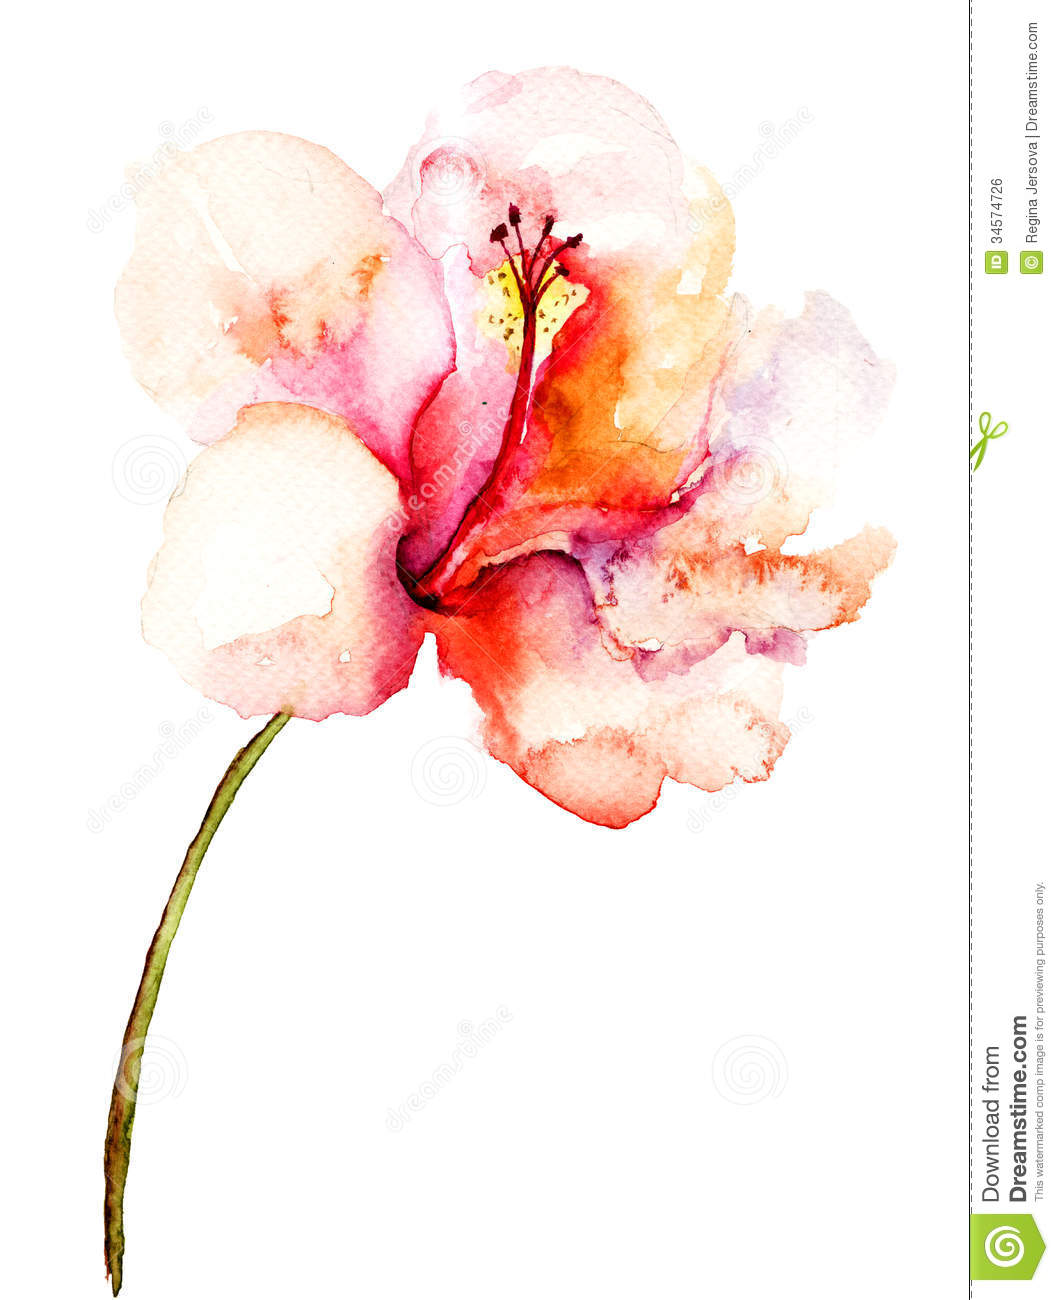 Decorative pink flower stock illustration illustration of decorative pink flower mightylinksfo